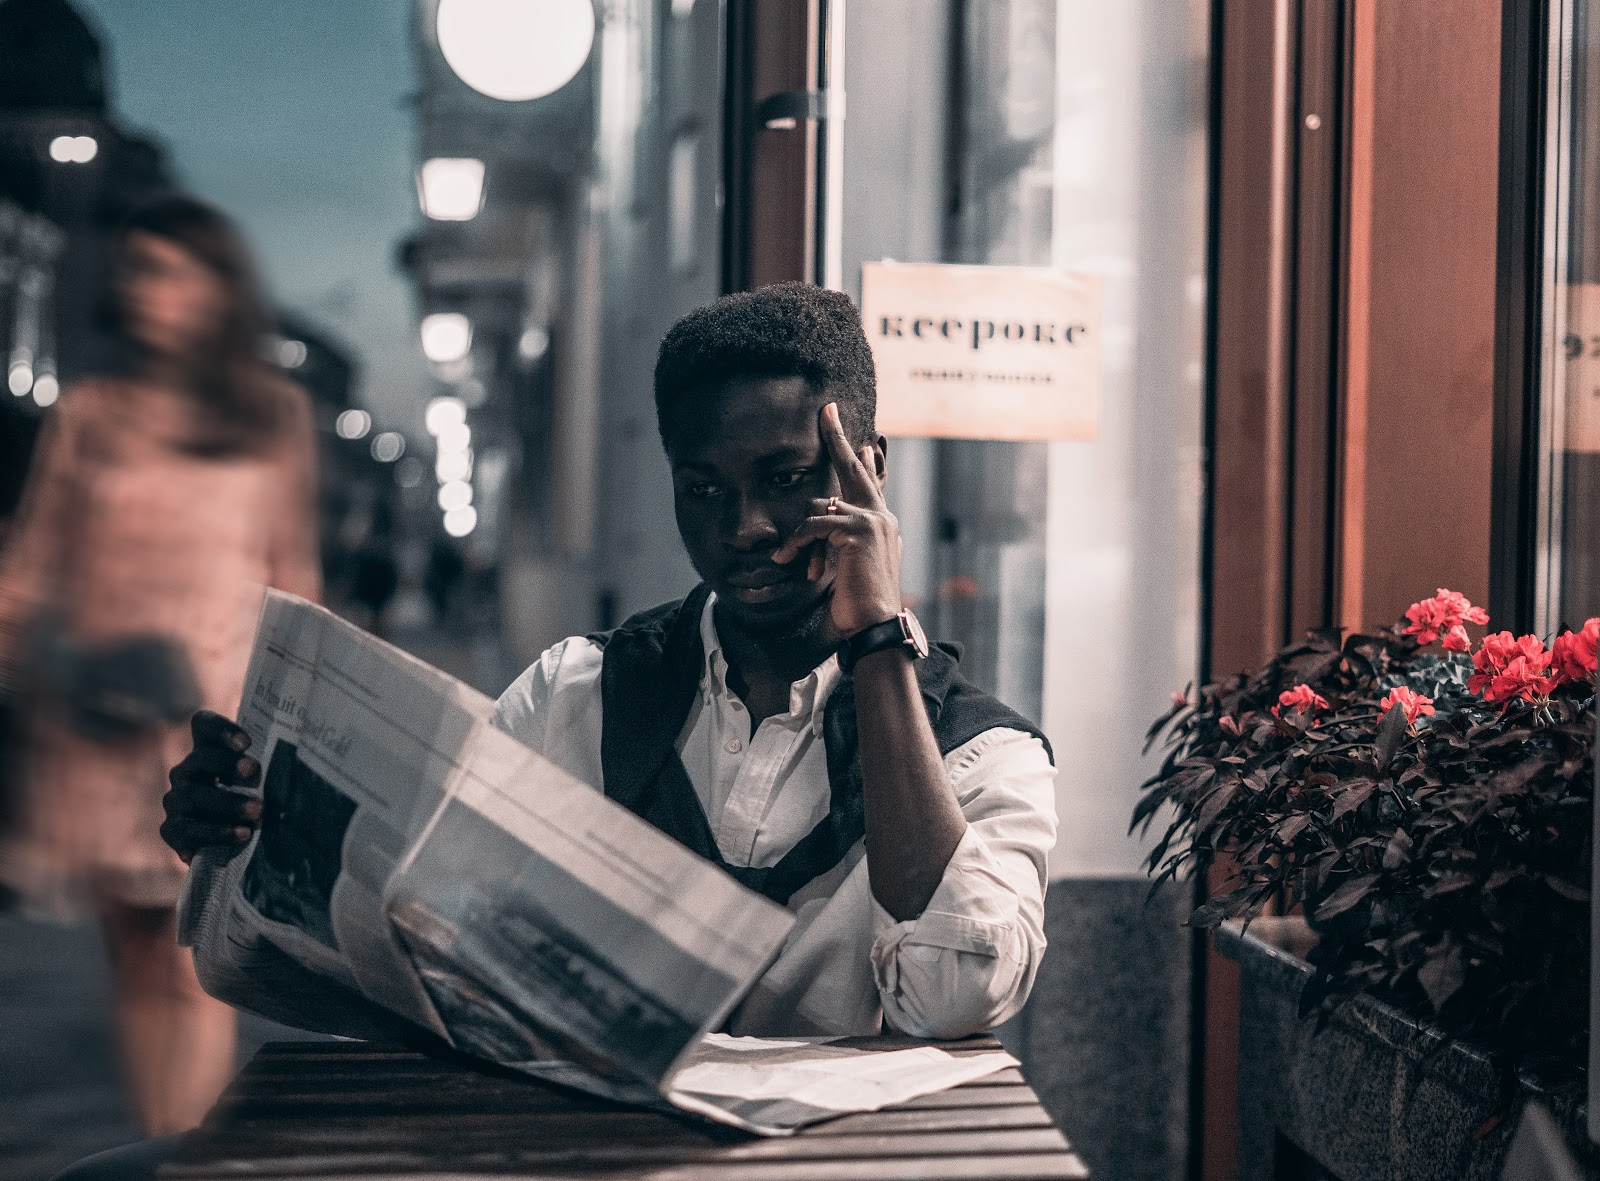 Man immersed in reading a newspaper.